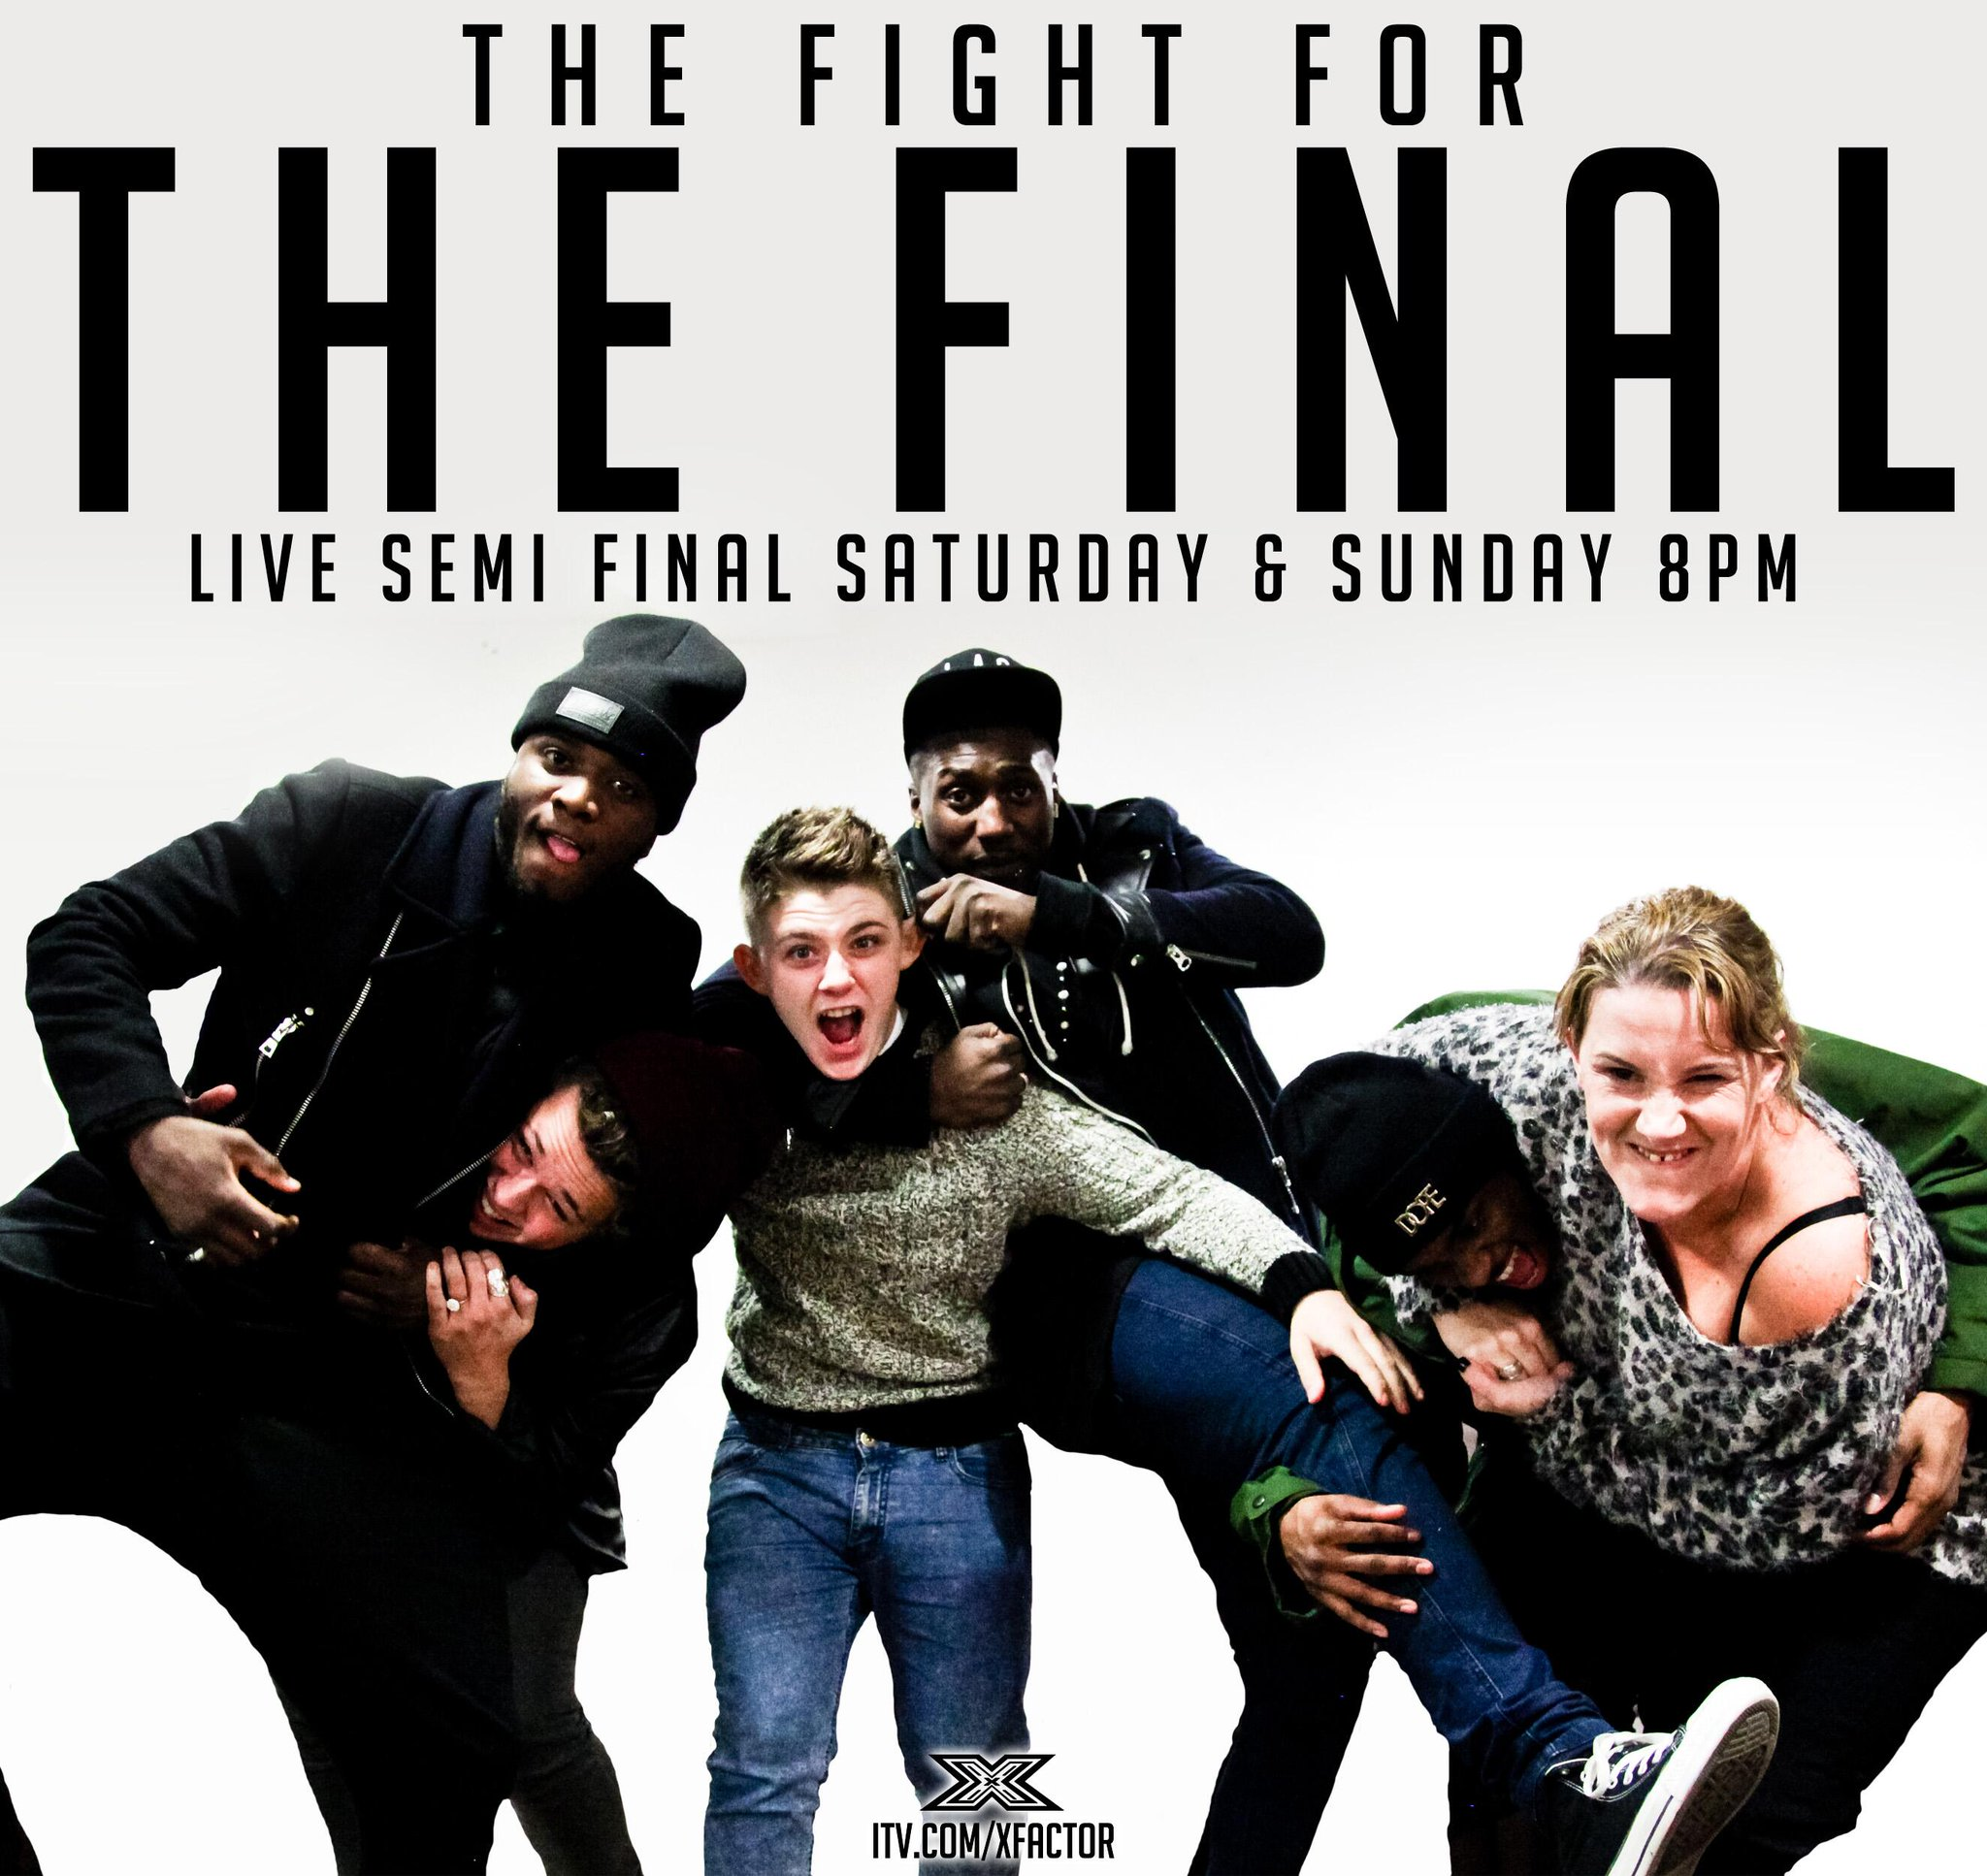 RT @TheXFactor: The fight is on… #XFactor @RoughCopyUK @LukeFriendMusic @nickymcdonald1 @SamBaileyREAL http://t.co/buIsVpNwzD